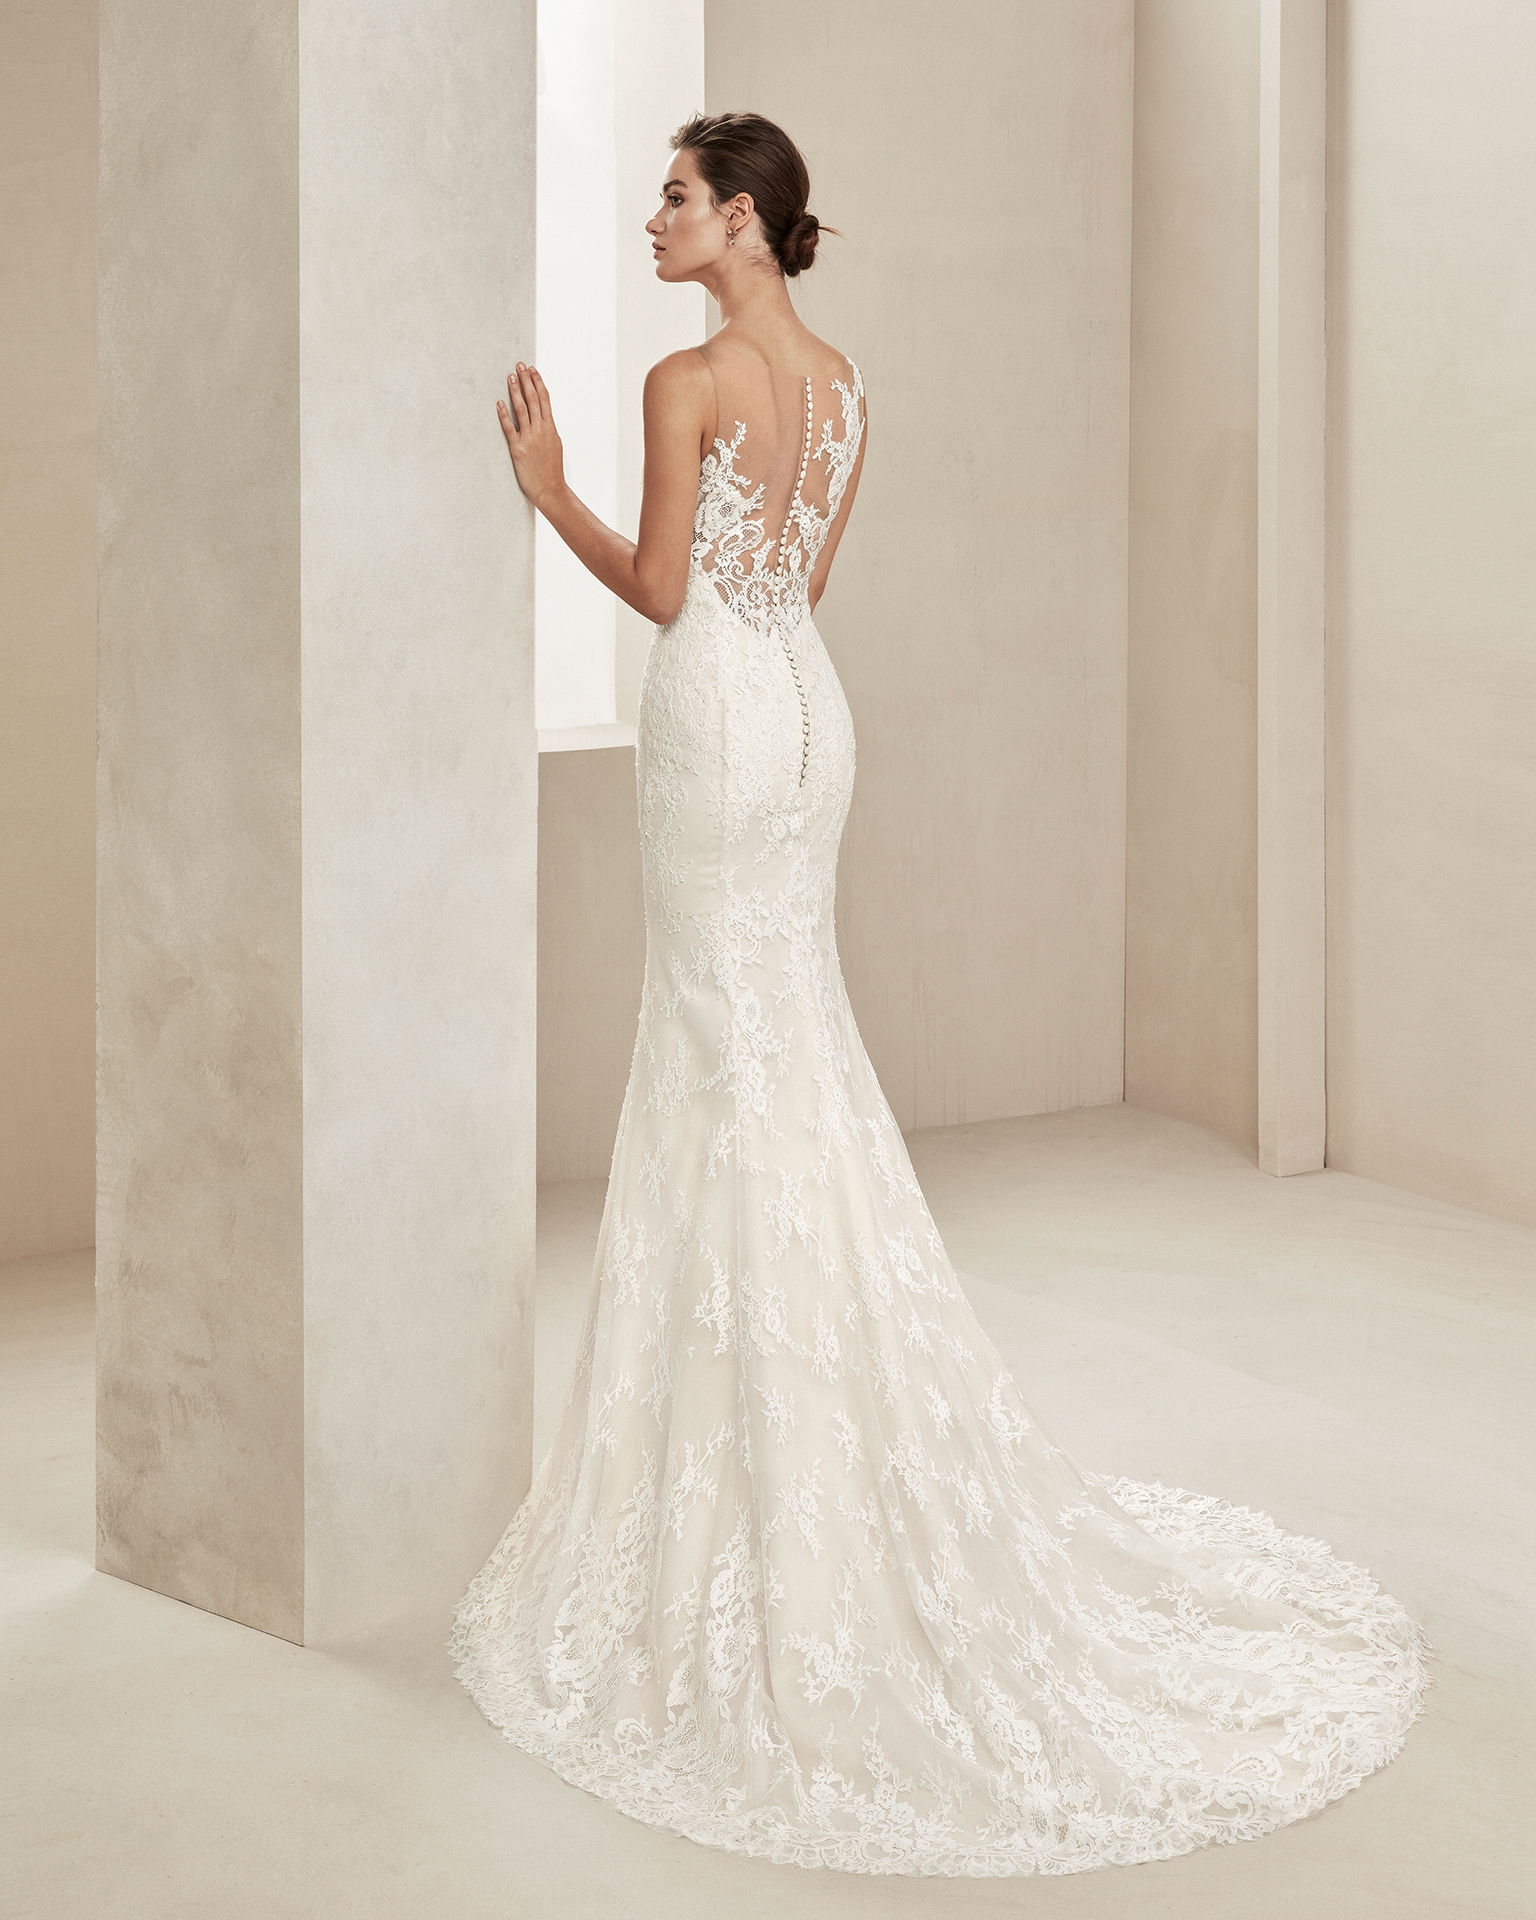 Mermaid-style wedding dress in beaded lace. With illusion neckline. Available in natural. 2019 ALMANOVIA Collection.